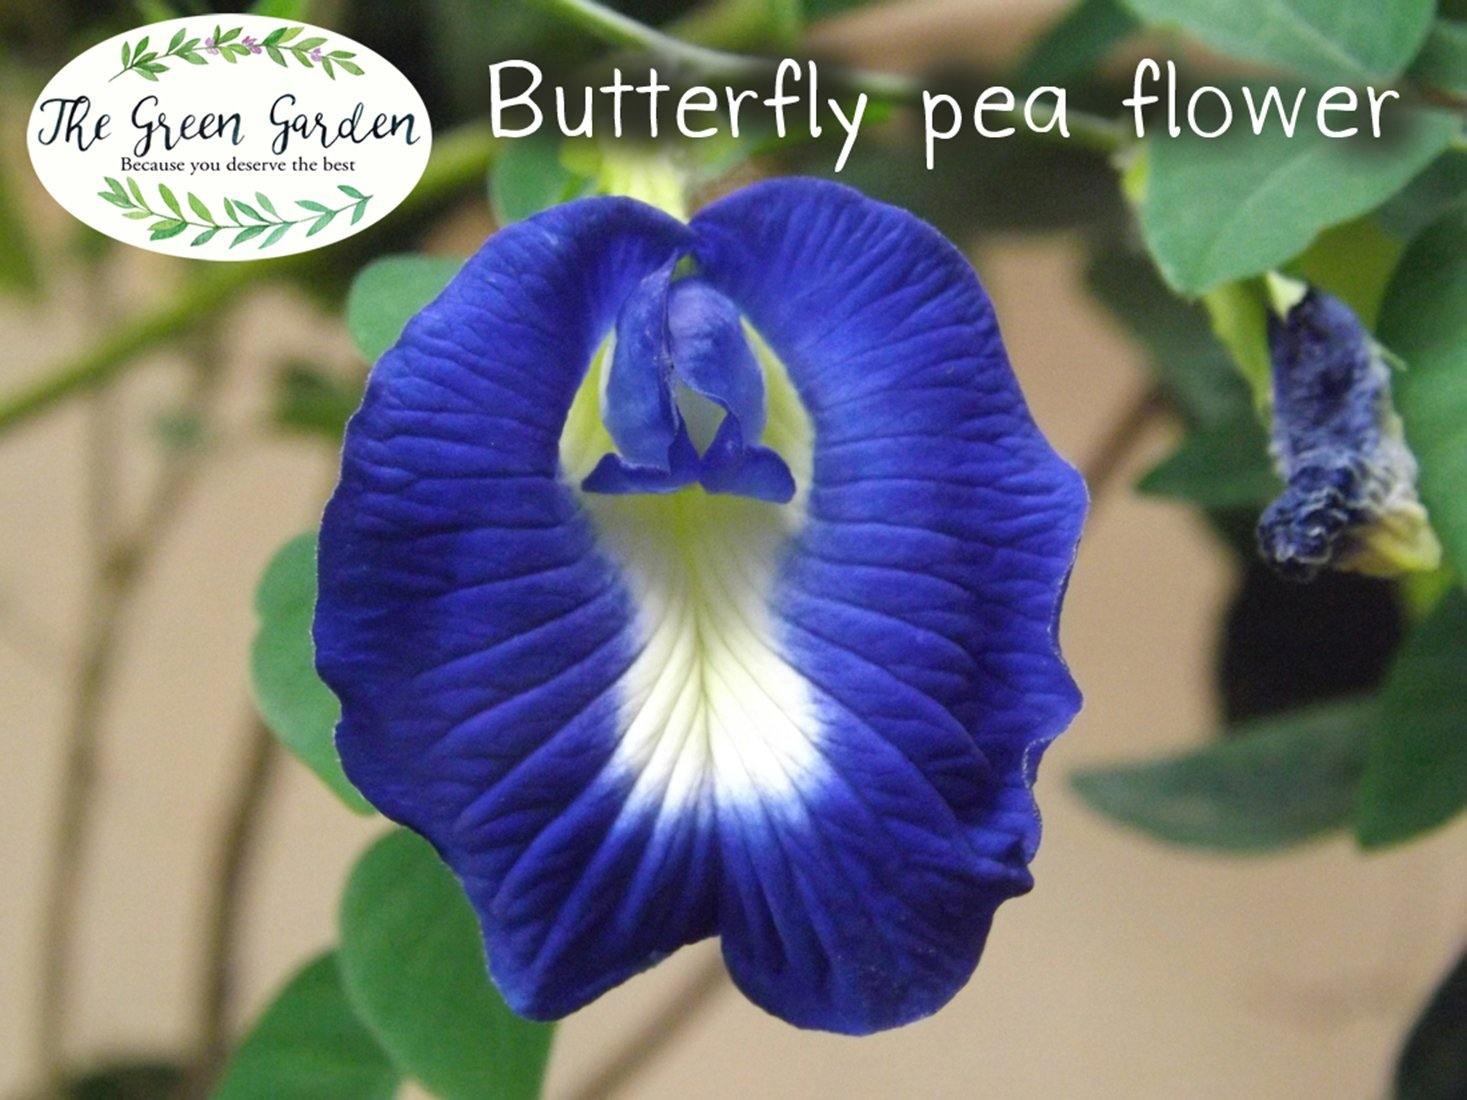 100% Organic Dried Pure Butterfly Pea Flowers 1.60 Oz. (50 g.) Herbals Blue Tea, All Natural Ingredients, Nontoxic, GMO-Free, Safe and Healthy in Zipper Packaging and Get Free a Wooden Spoon by FBA by The Green Garden (Image #3)